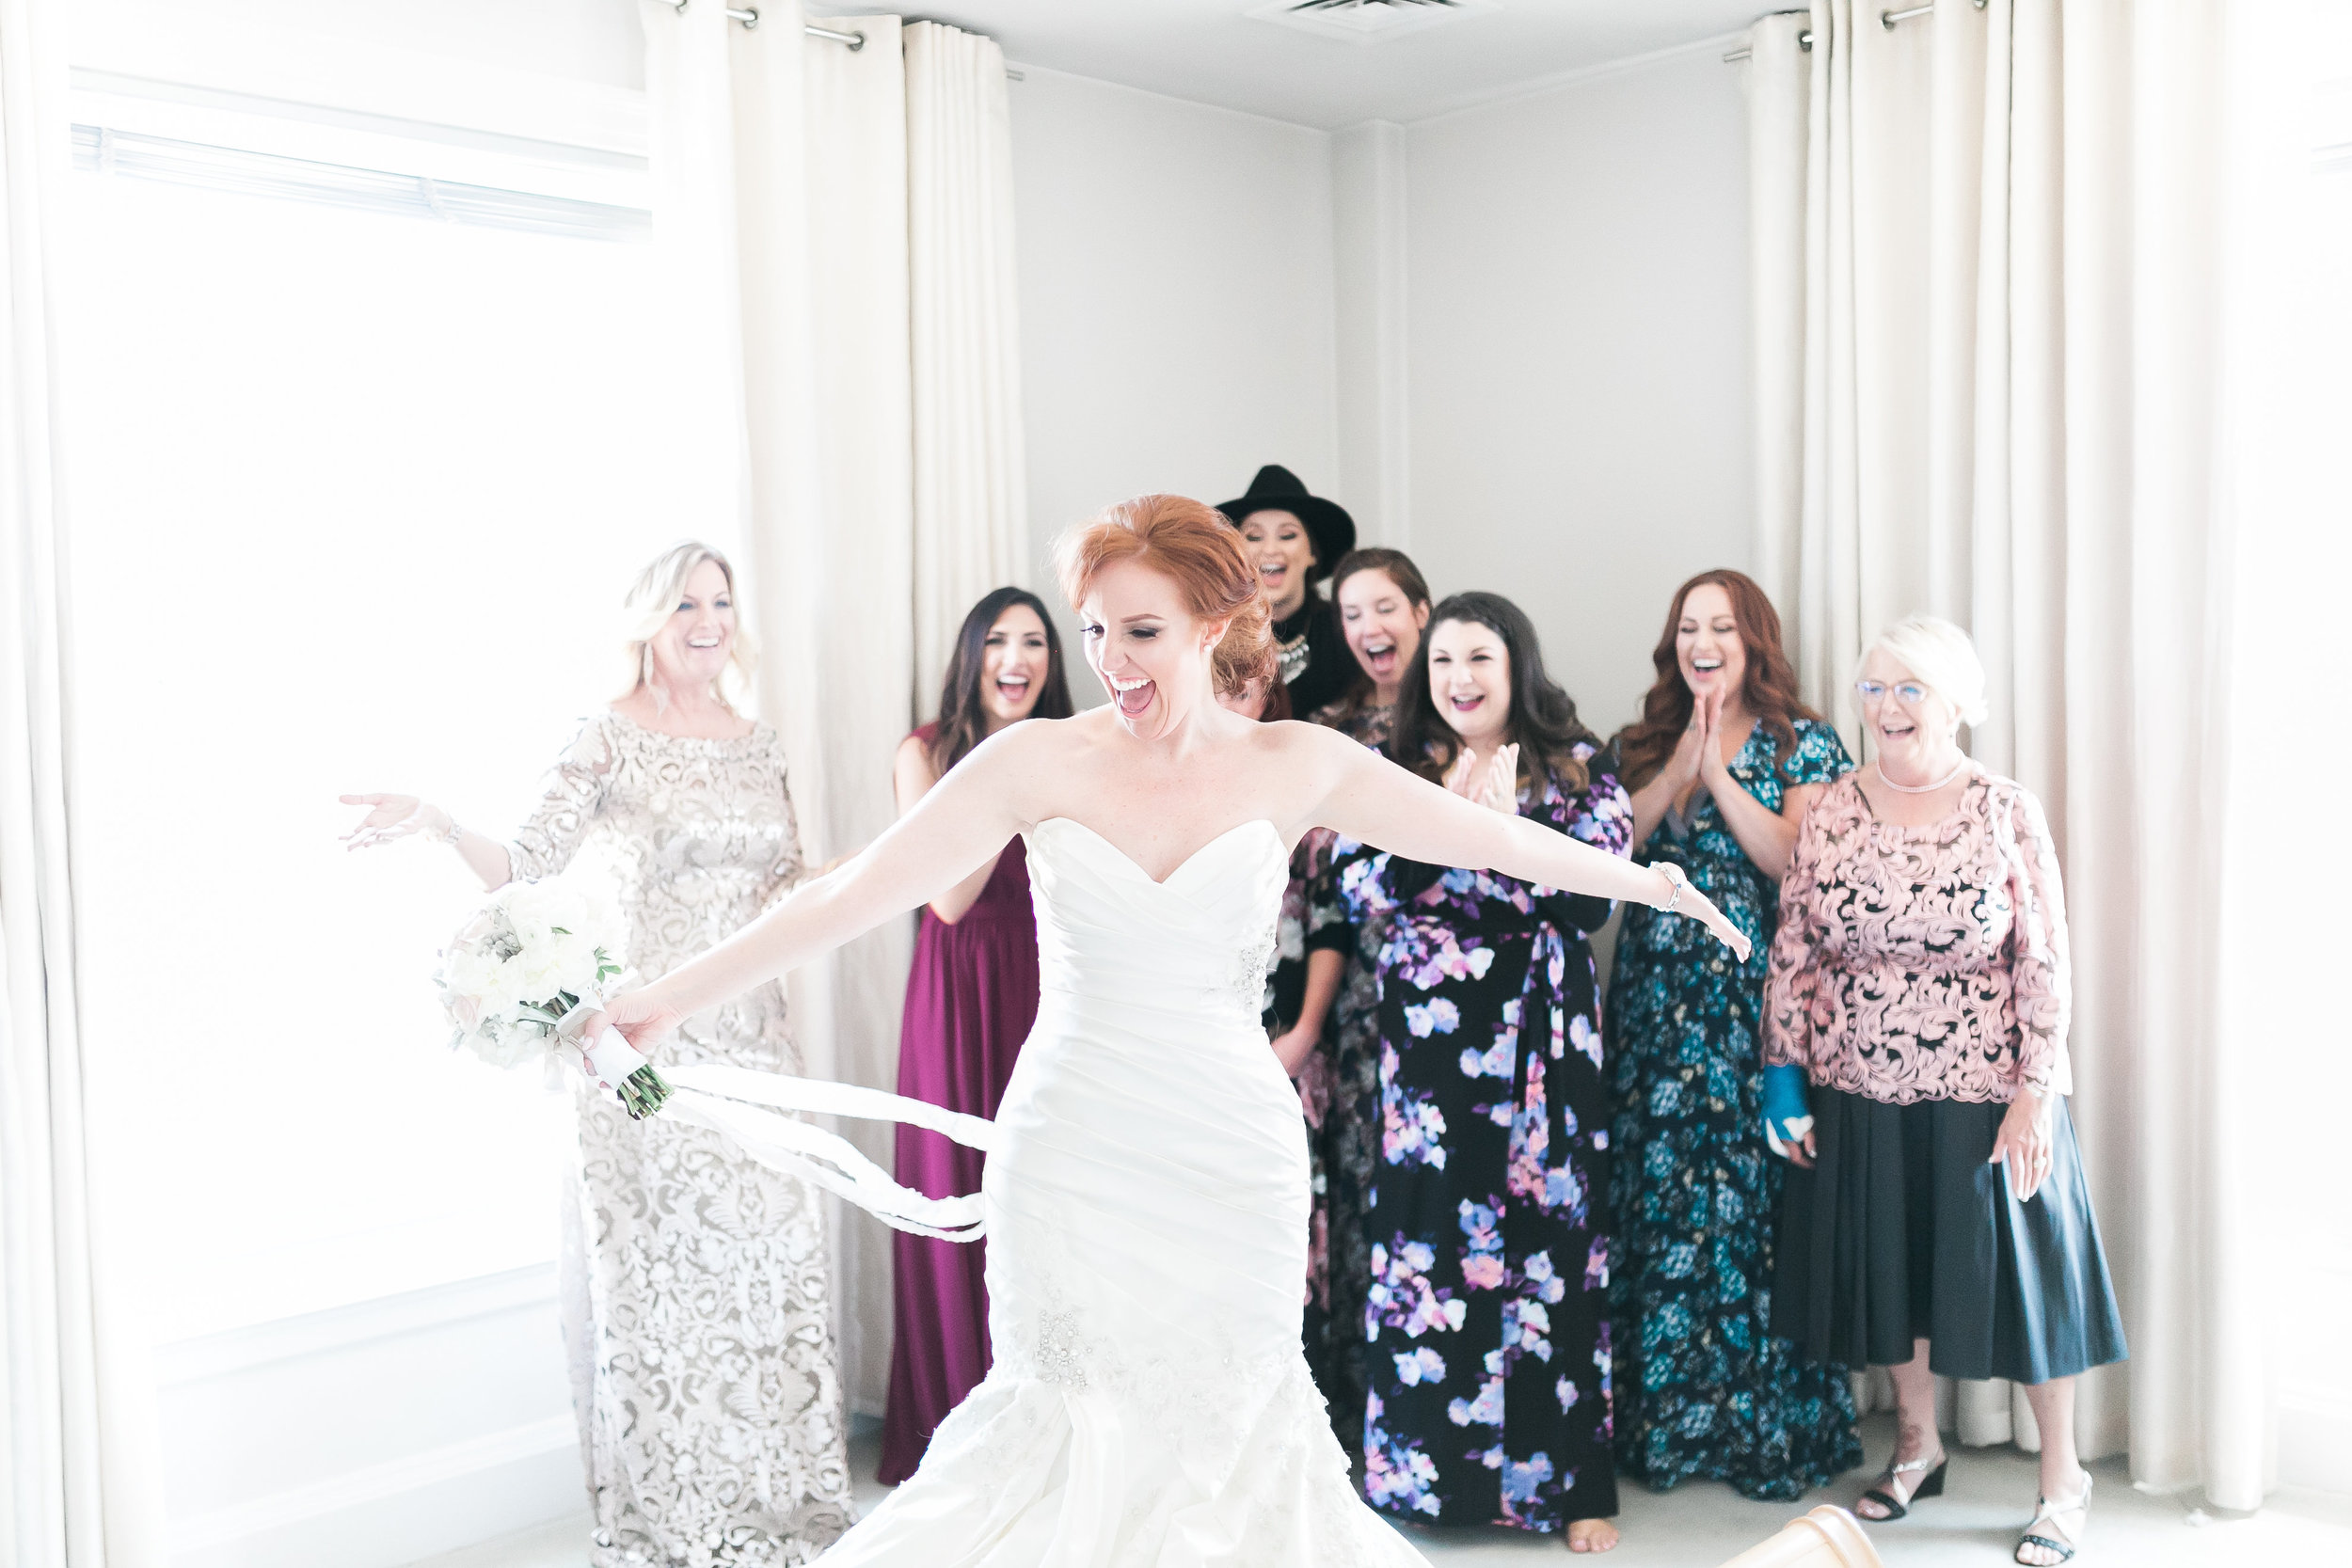 wedding day las vegas wedding planner green orchid events first look with friends wedding ideas